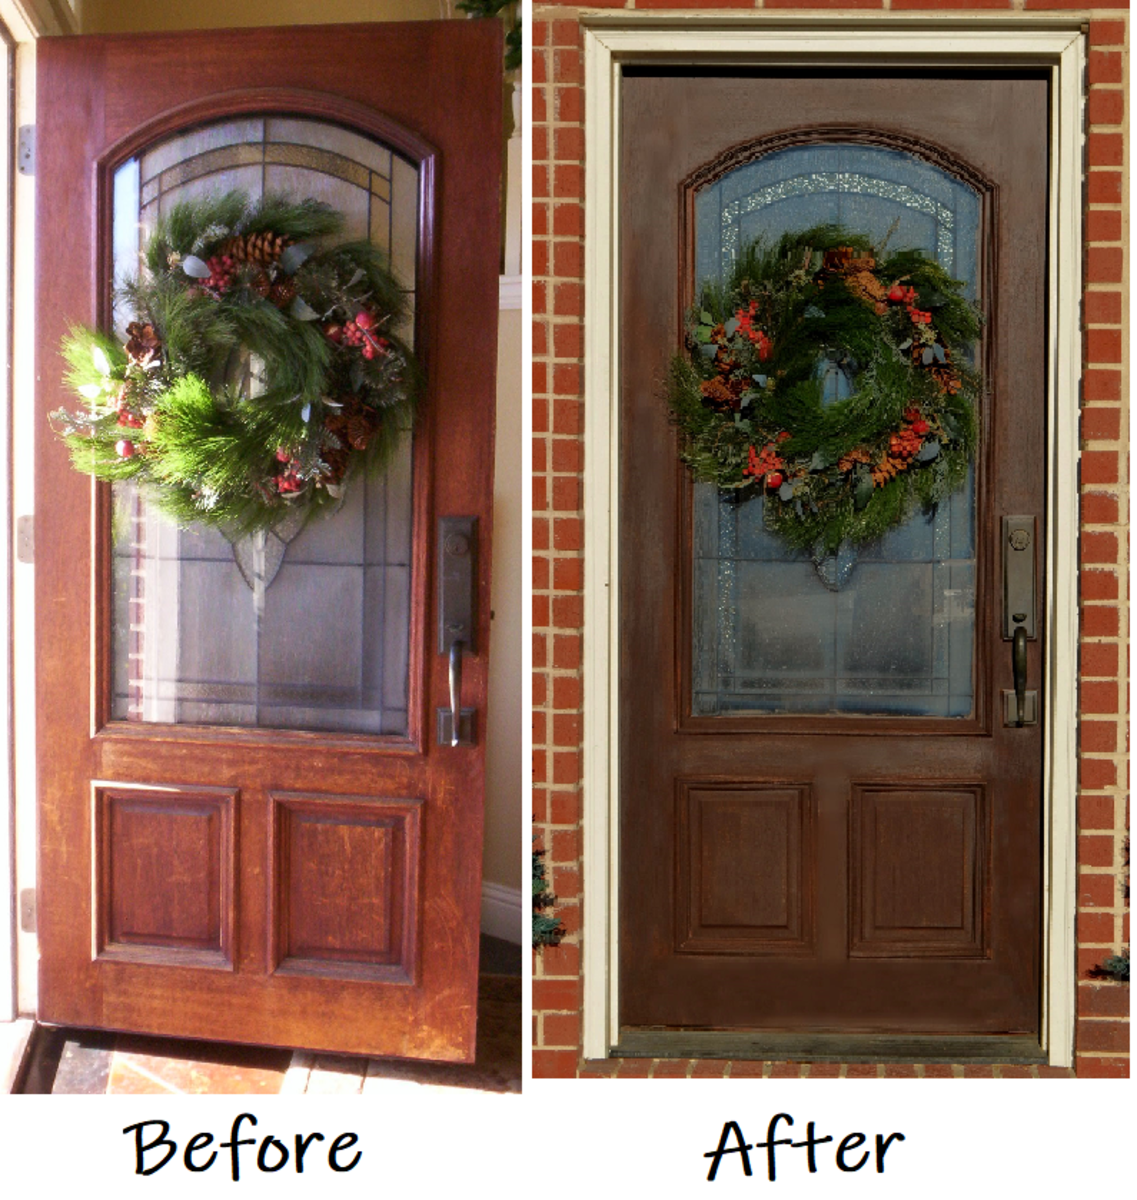 Applying a General Finishes Gel Stain on My Home's Front Door